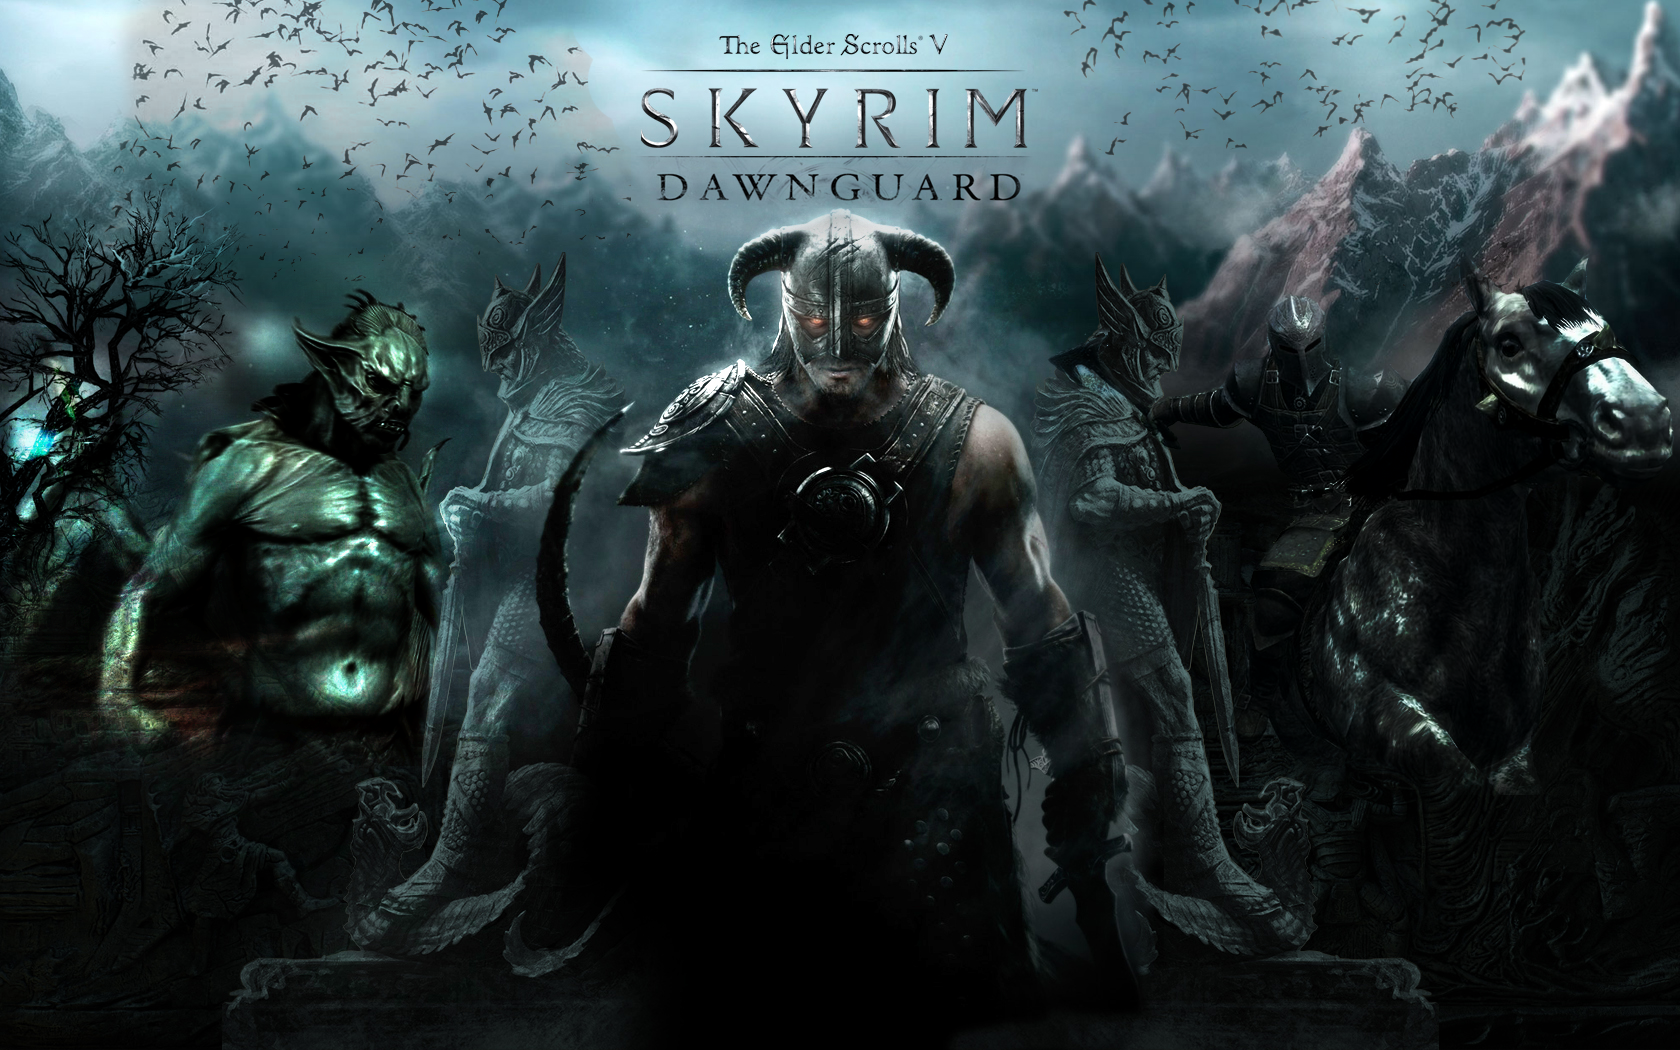 Skyrim dawnguard wallpaper wallpapersafari skyrim dawnguard wallpapers high definition hd games wallpaper voltagebd